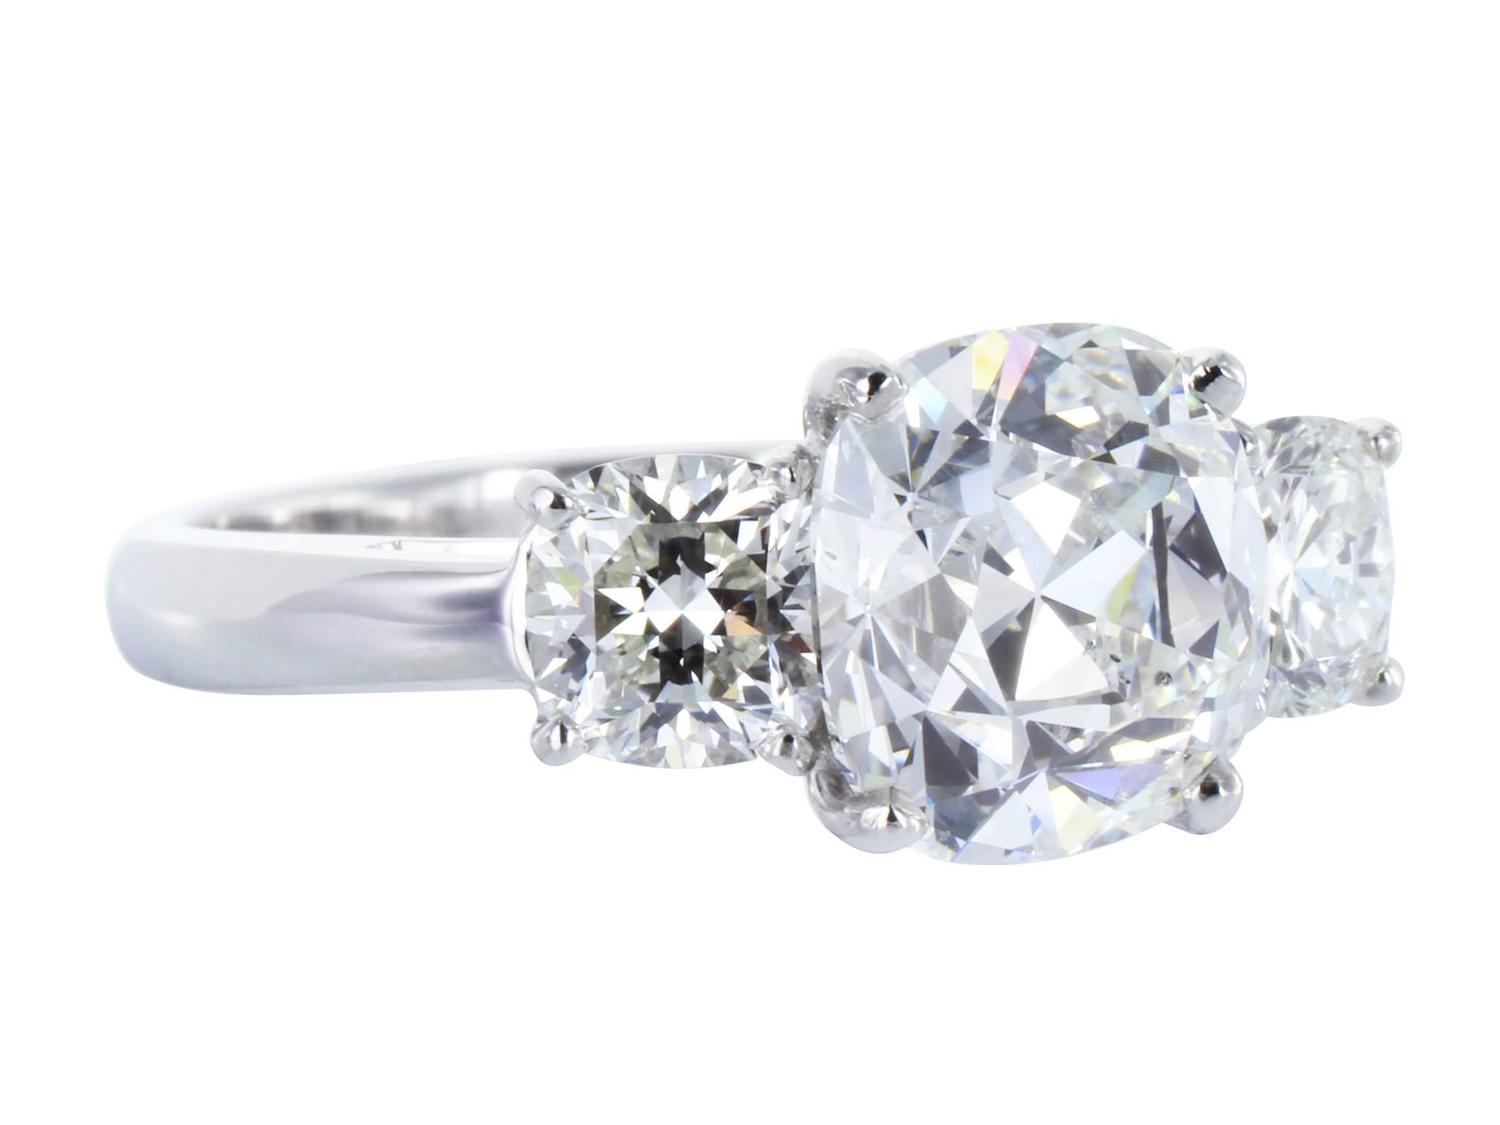 2 36 Carat GIA Cert Cushion Cut Diamond Platinum Engagement Ring For Sale at